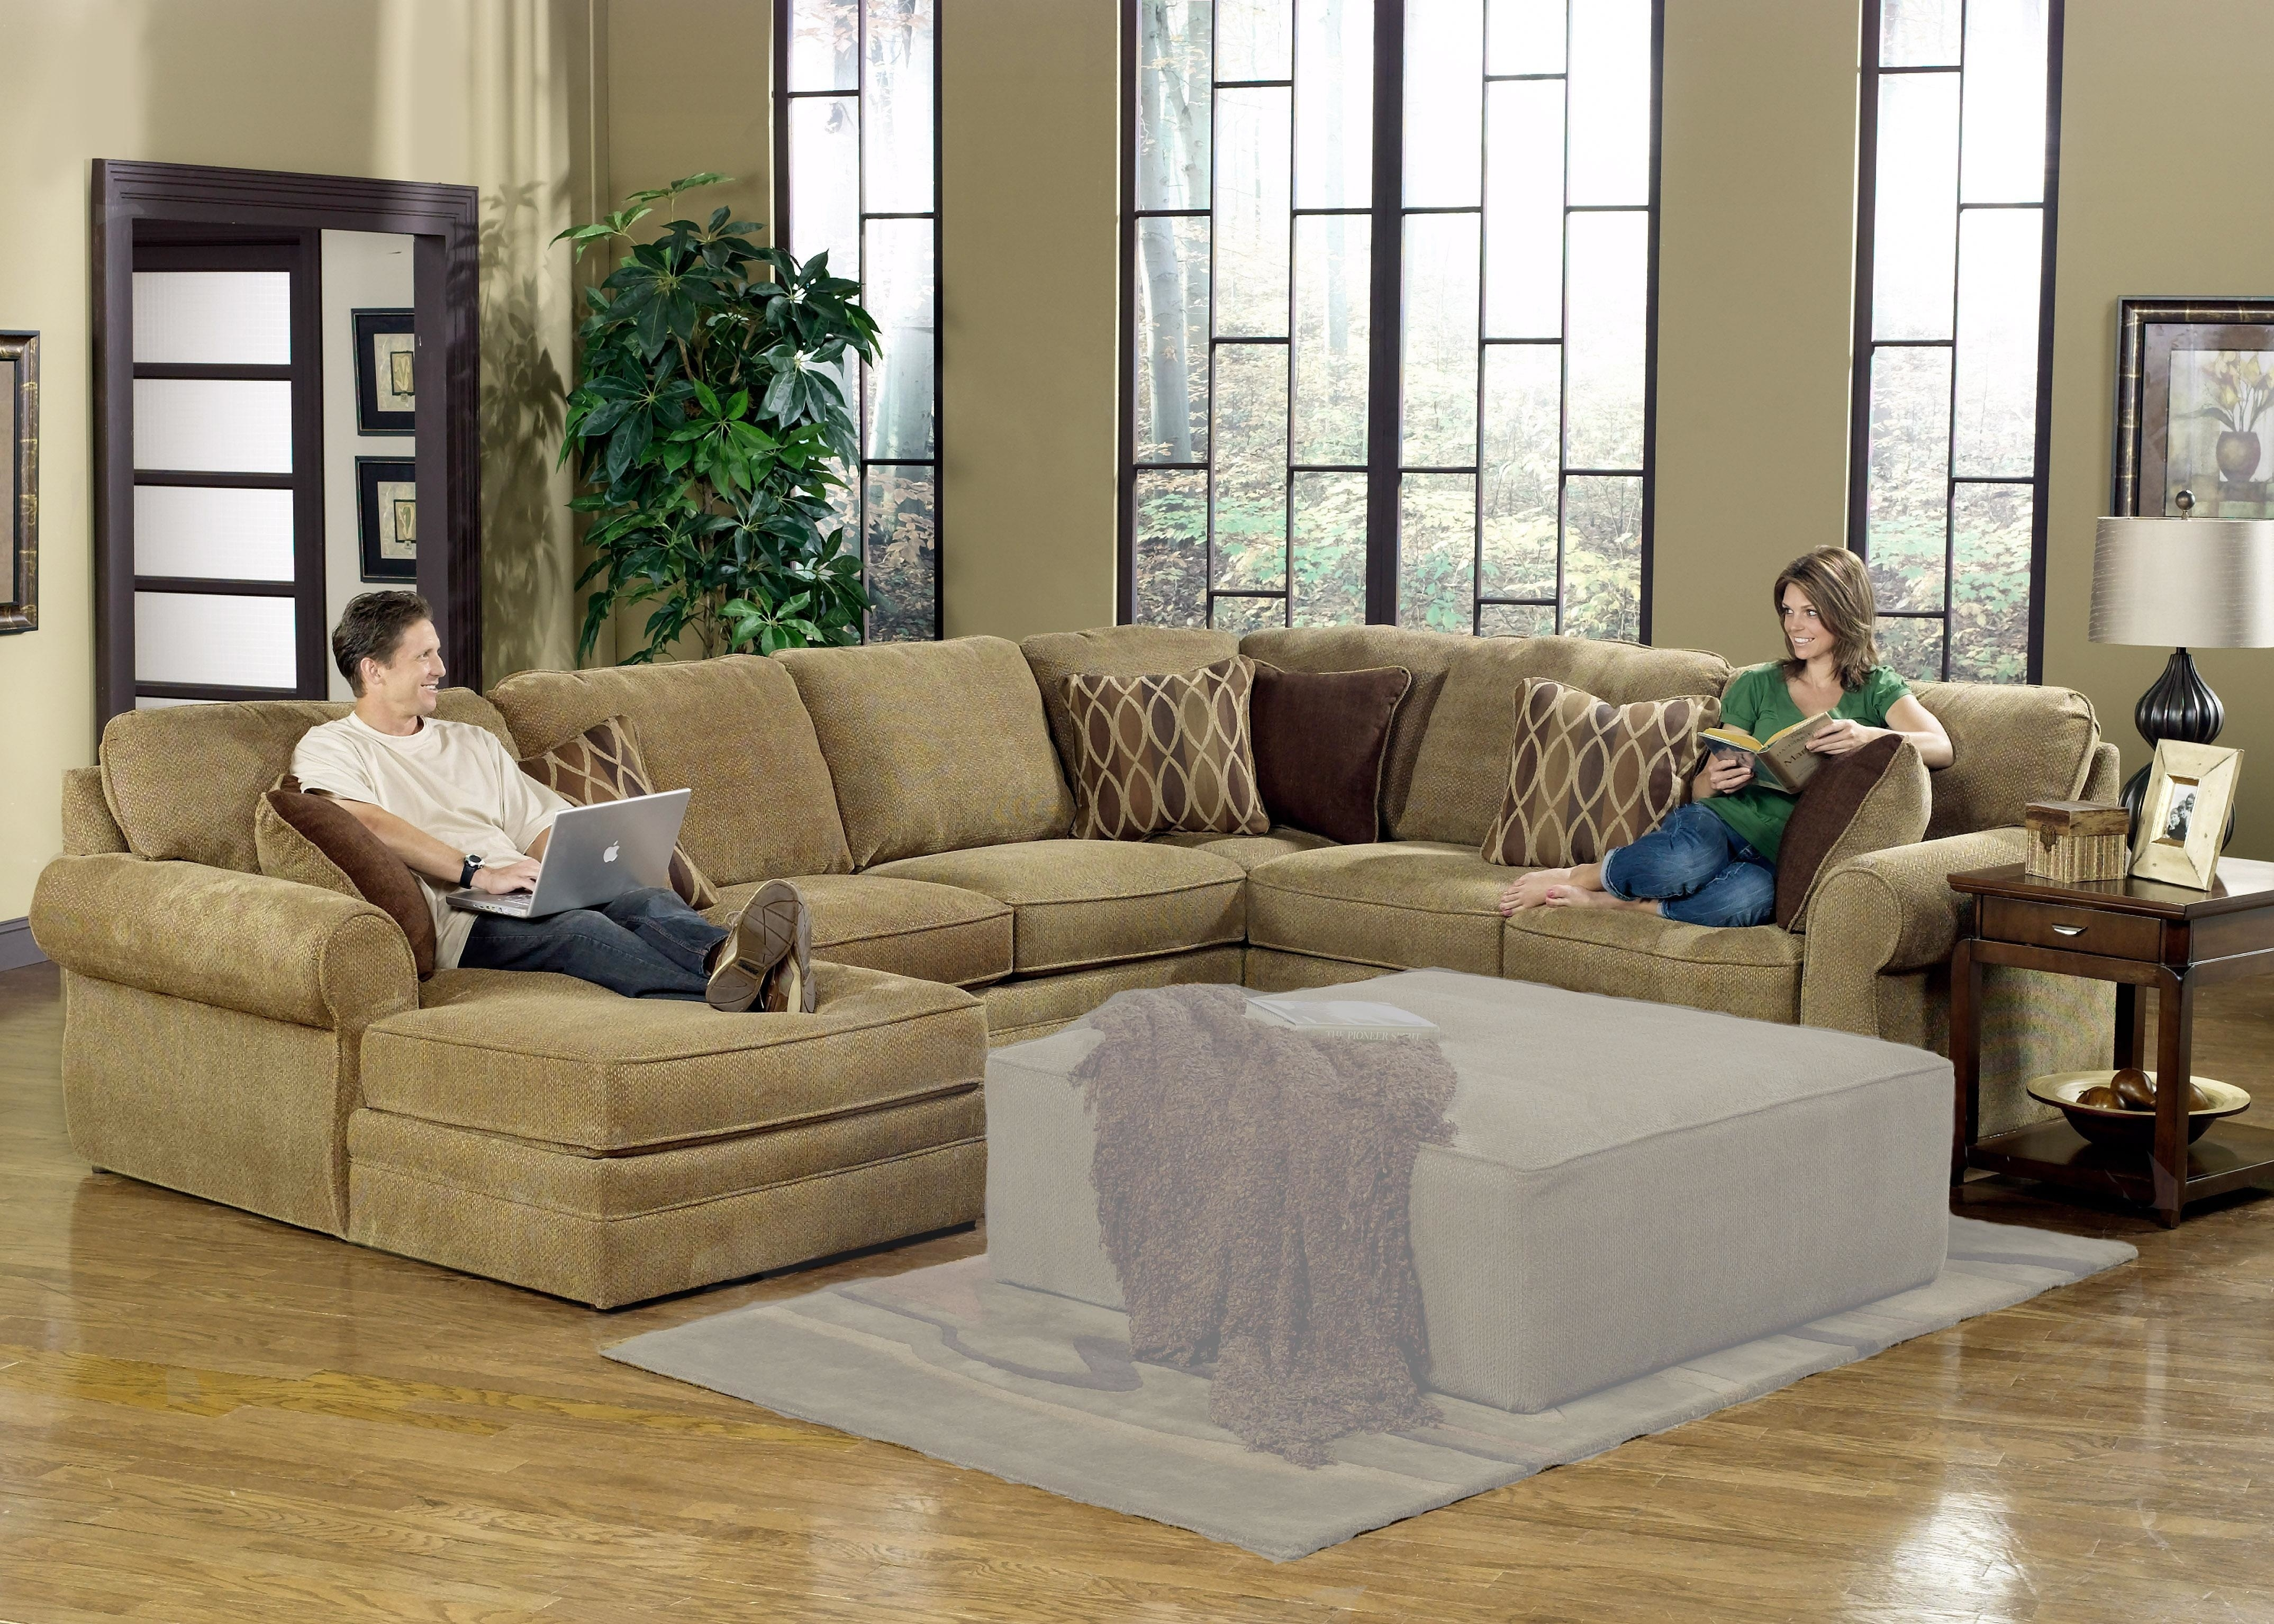 sleeper sofas atlanta best sofa under 1000 ideas sectional in explore 7 of 10